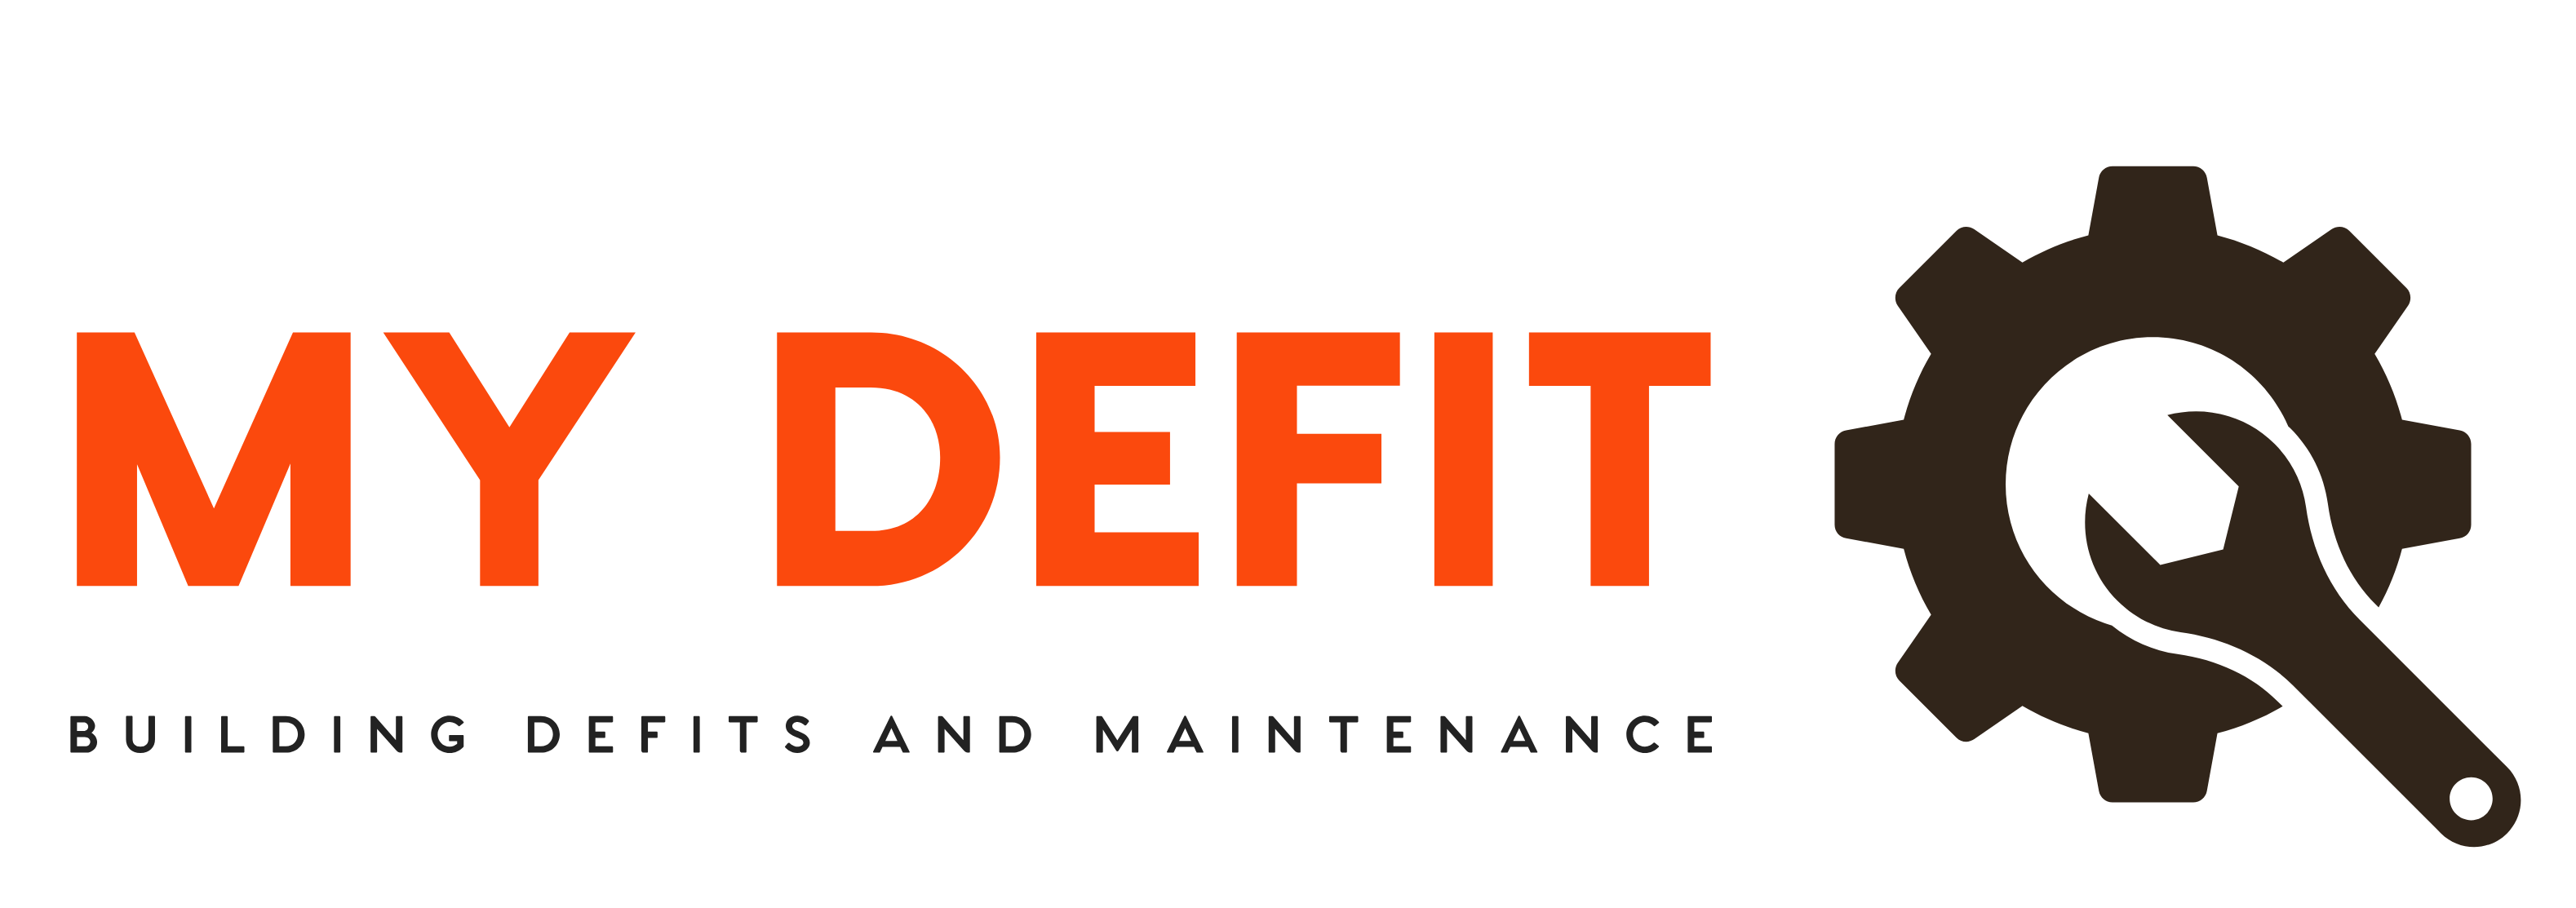 Defit and asset maintenance brisbane